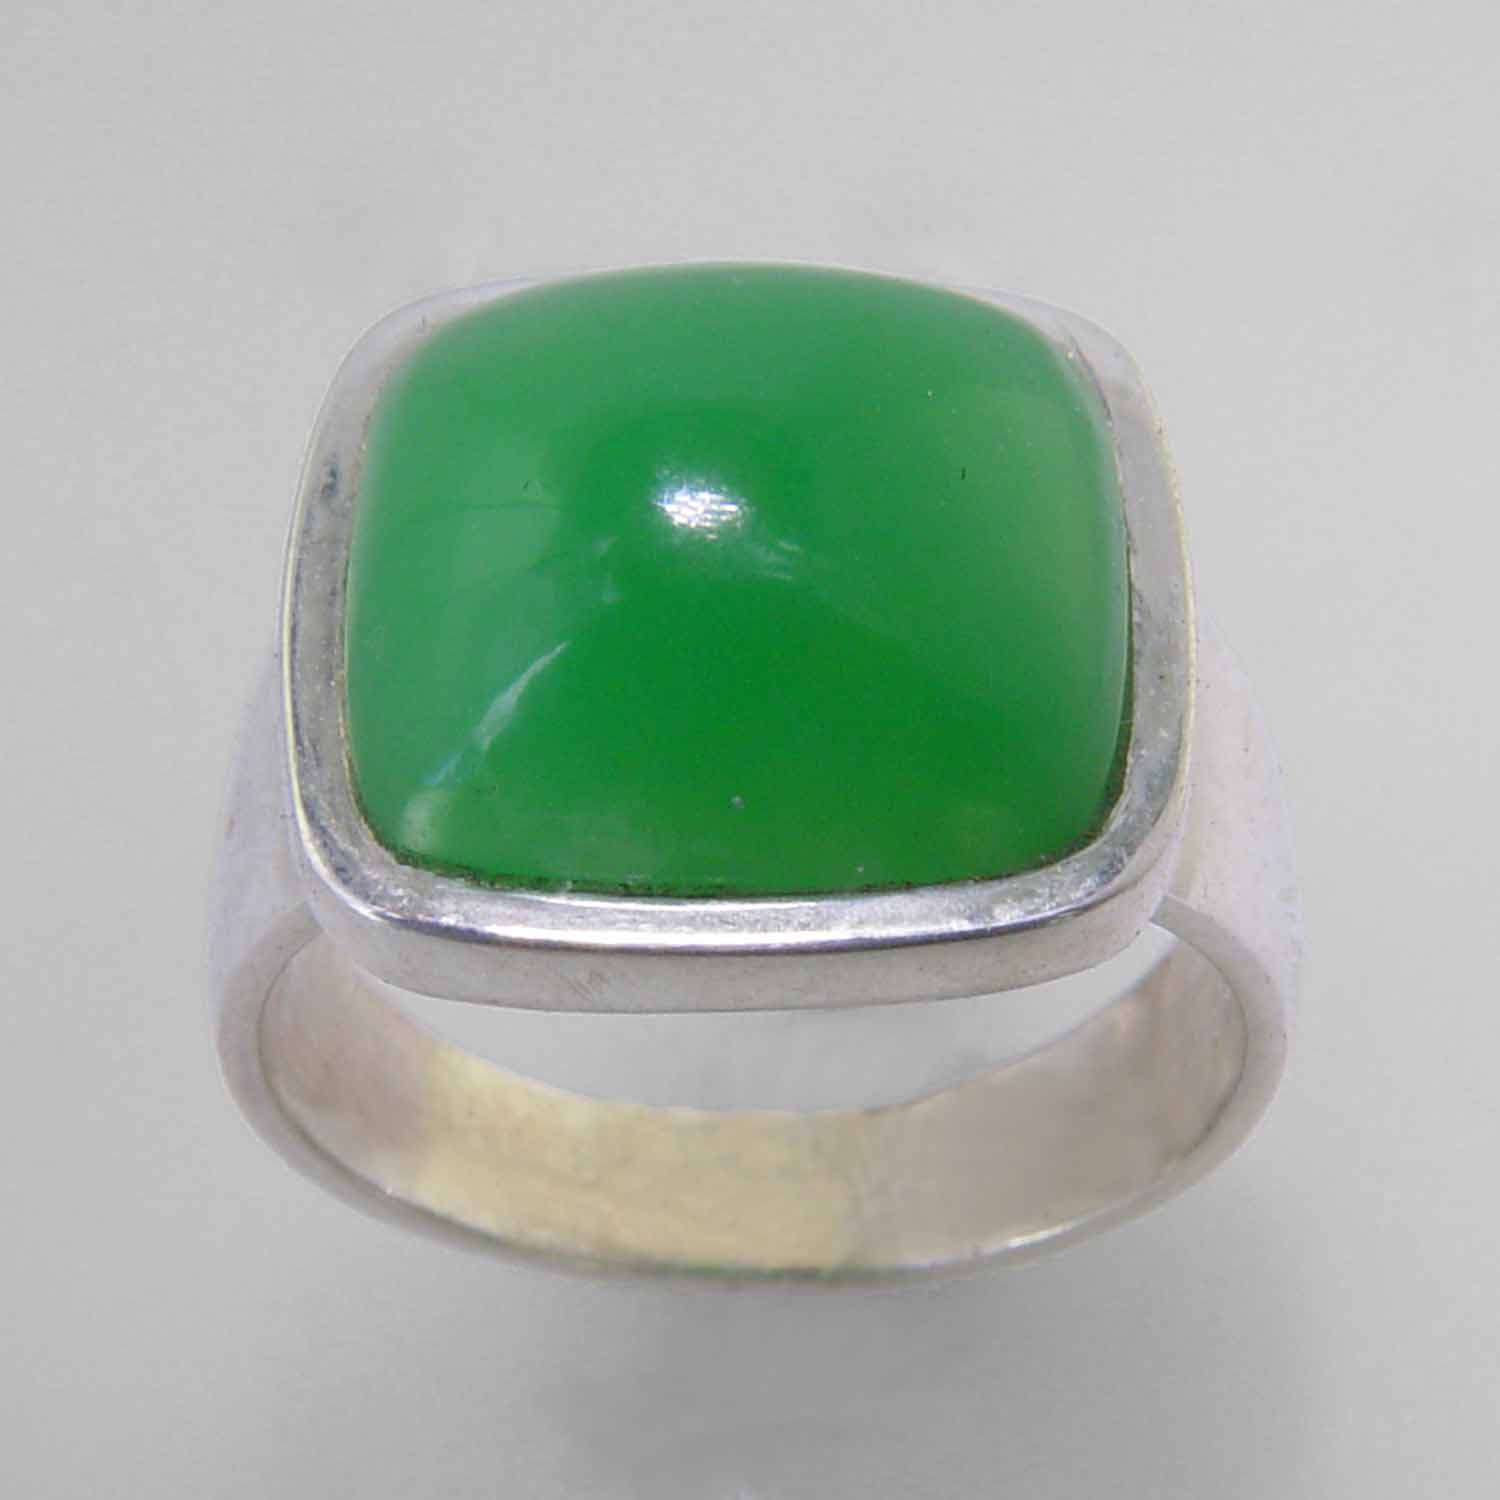 Chrysoprase 7.3 ct Antique Square Cab Bezel Set Sterling Silver Ring, Size 7